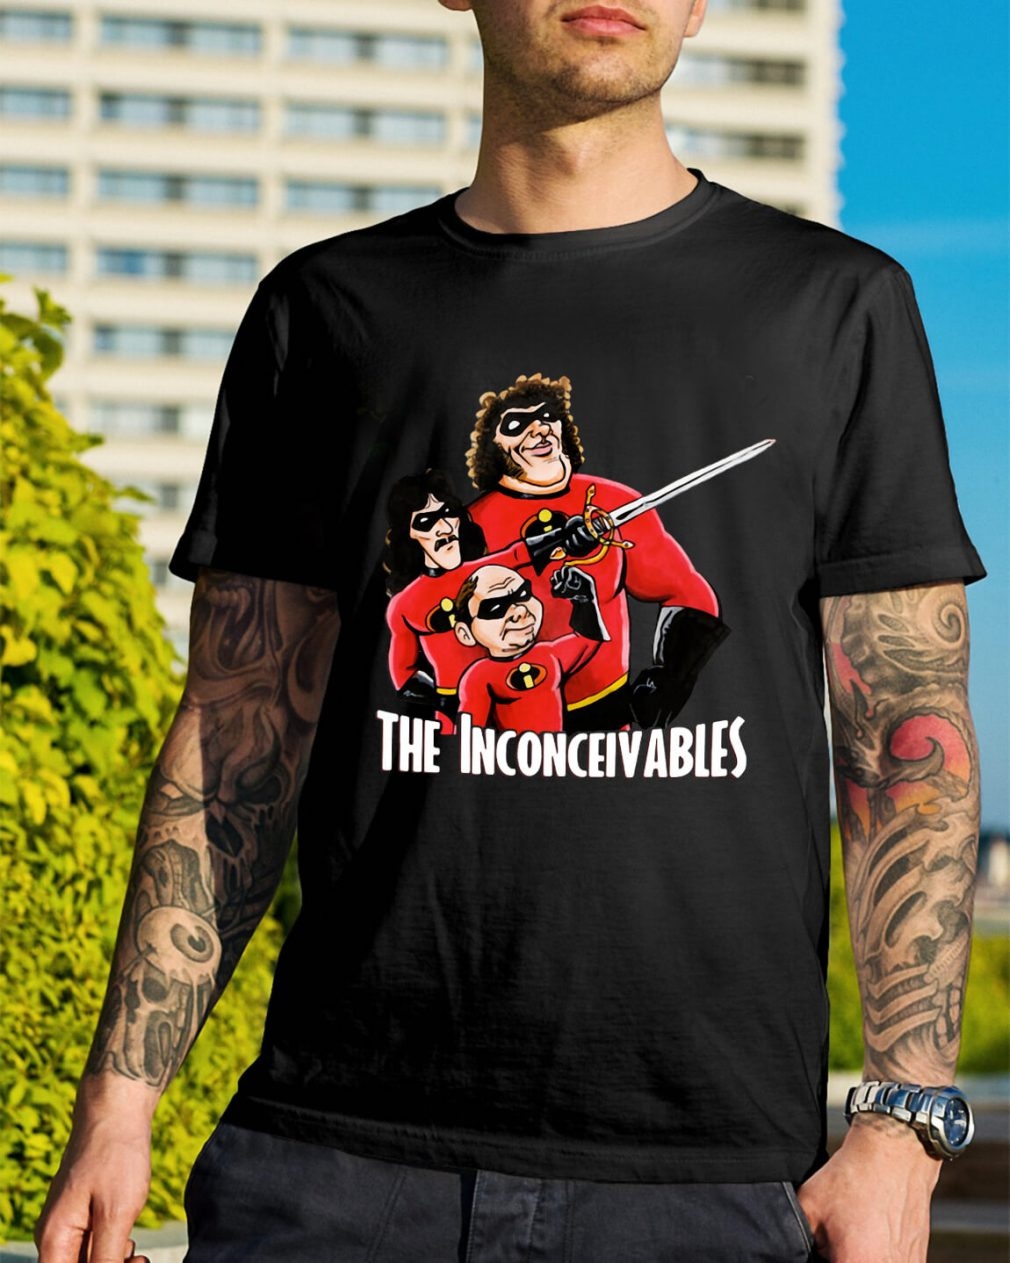 The Inconceivables shirt